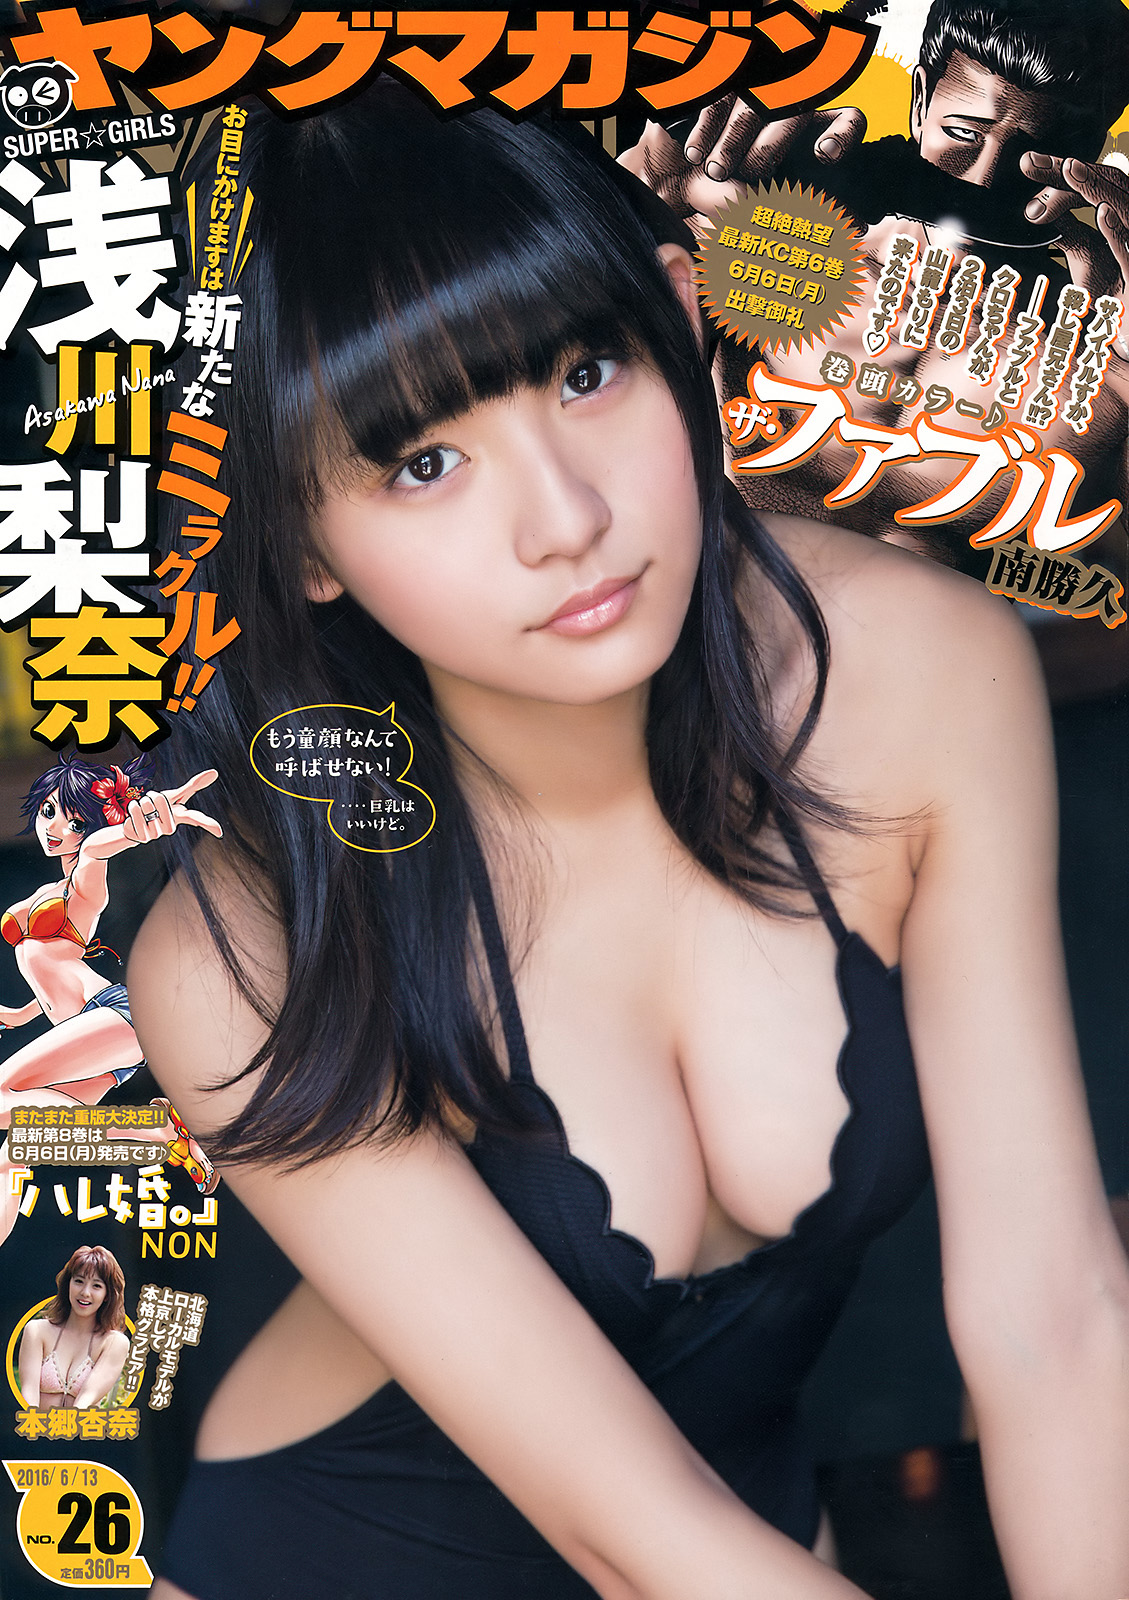 Asakawa Nana 浅川梨奈 SUPER☆GiRLS, Young Magazine 2016 No.26 Gravure